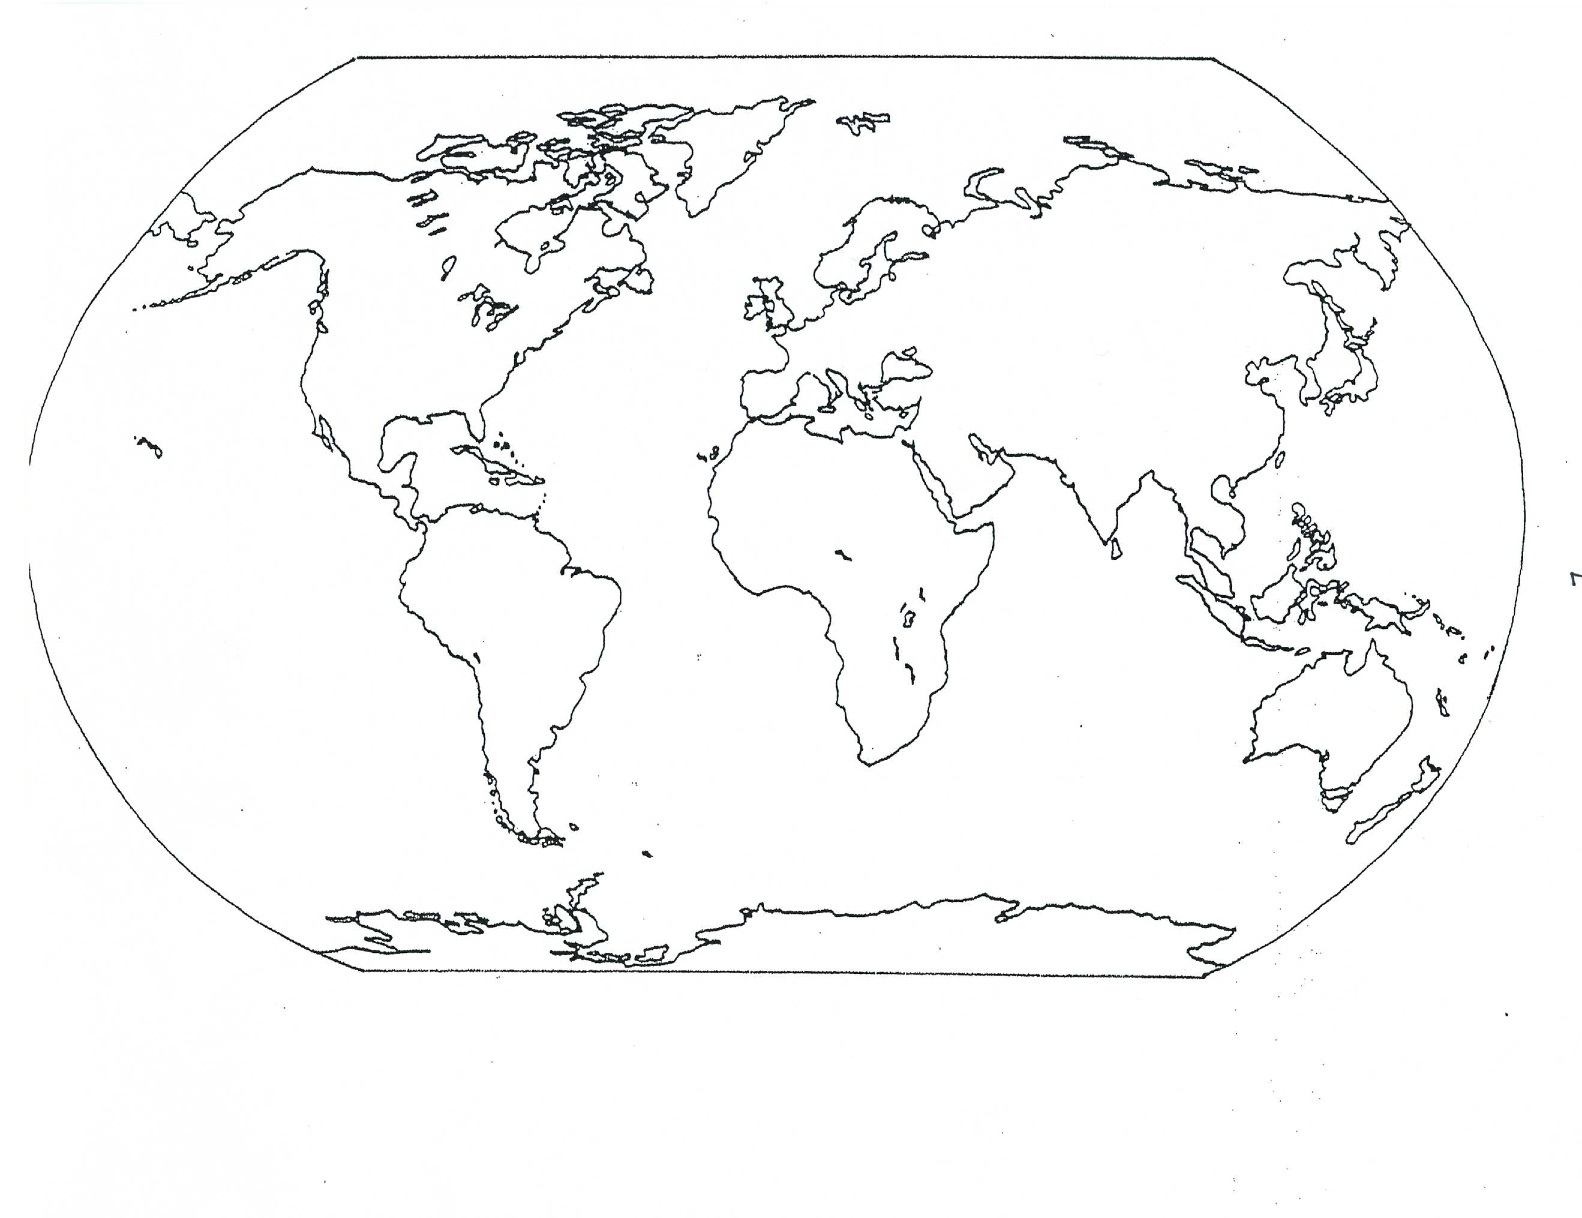 World Map Drawing Tumblr at GetDrawings.com | Free for personal use ...